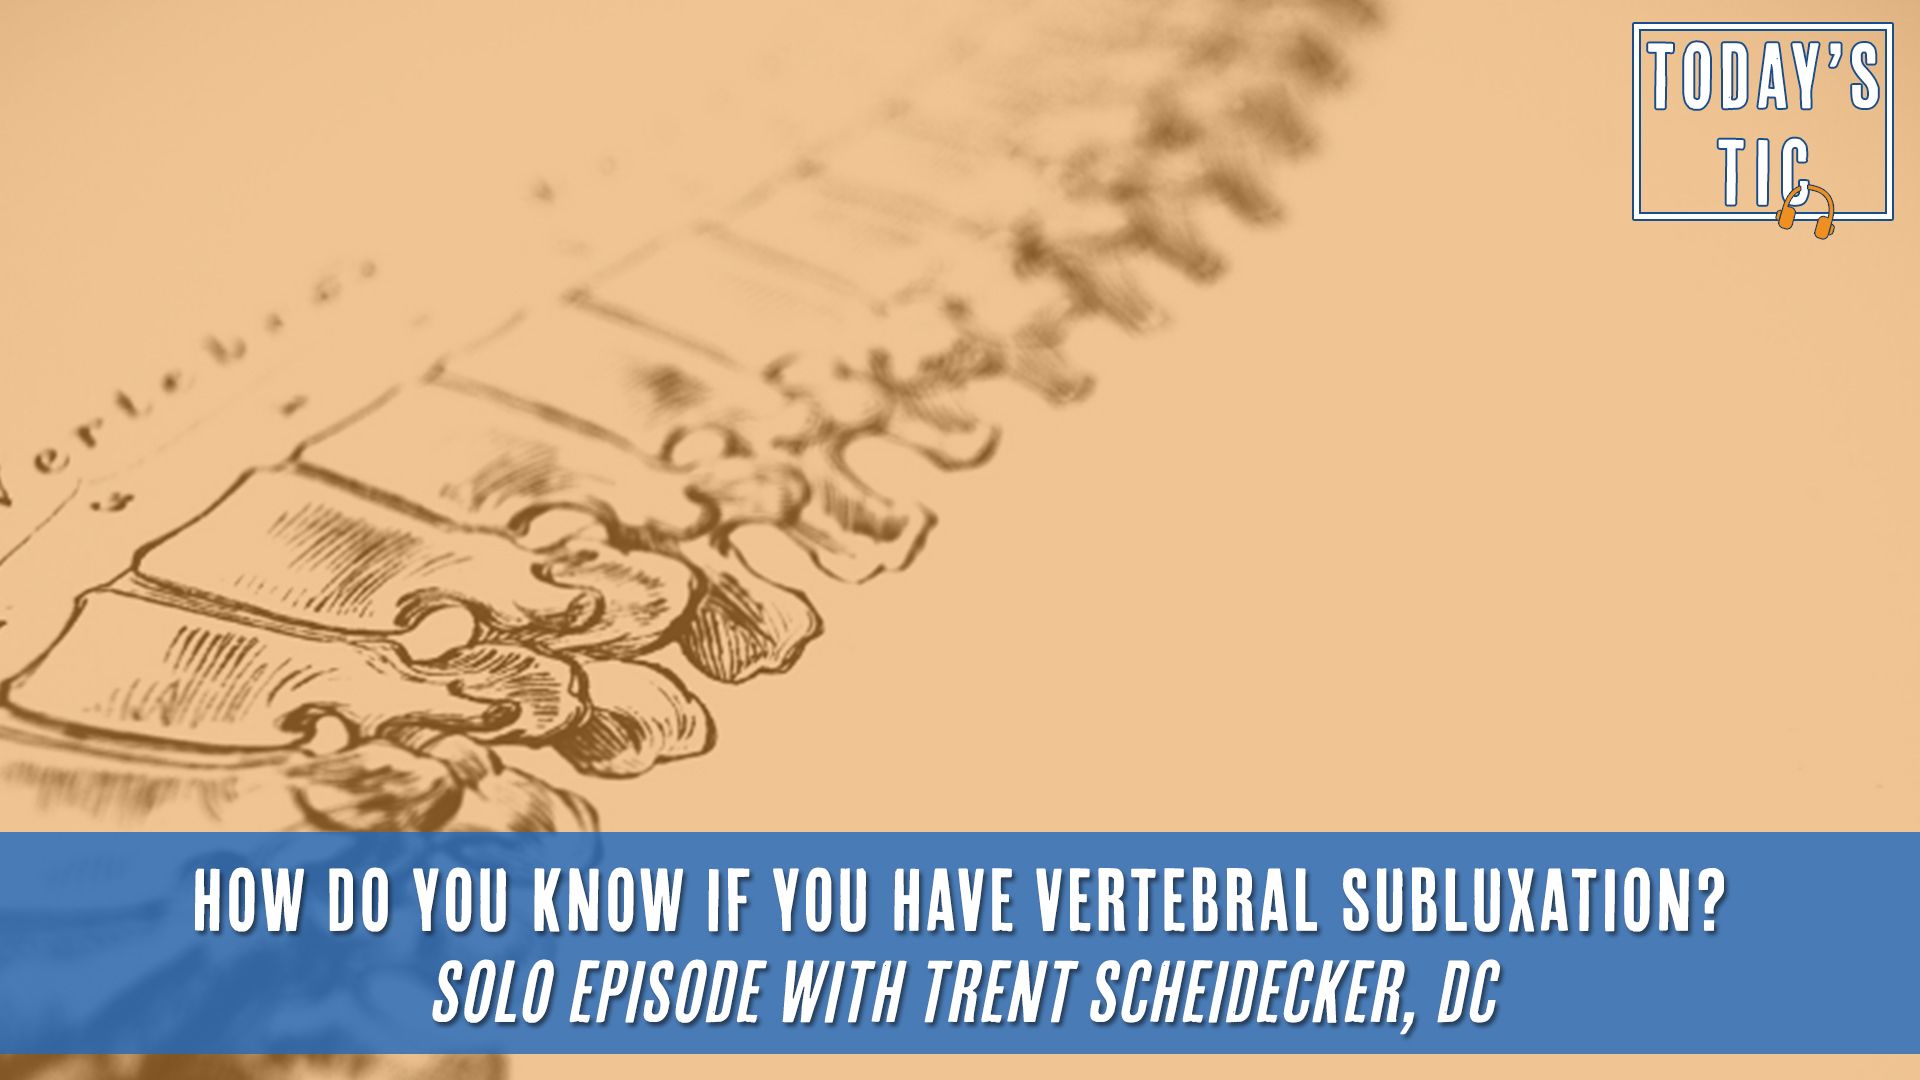 How do you know if you have vertebral subluxation